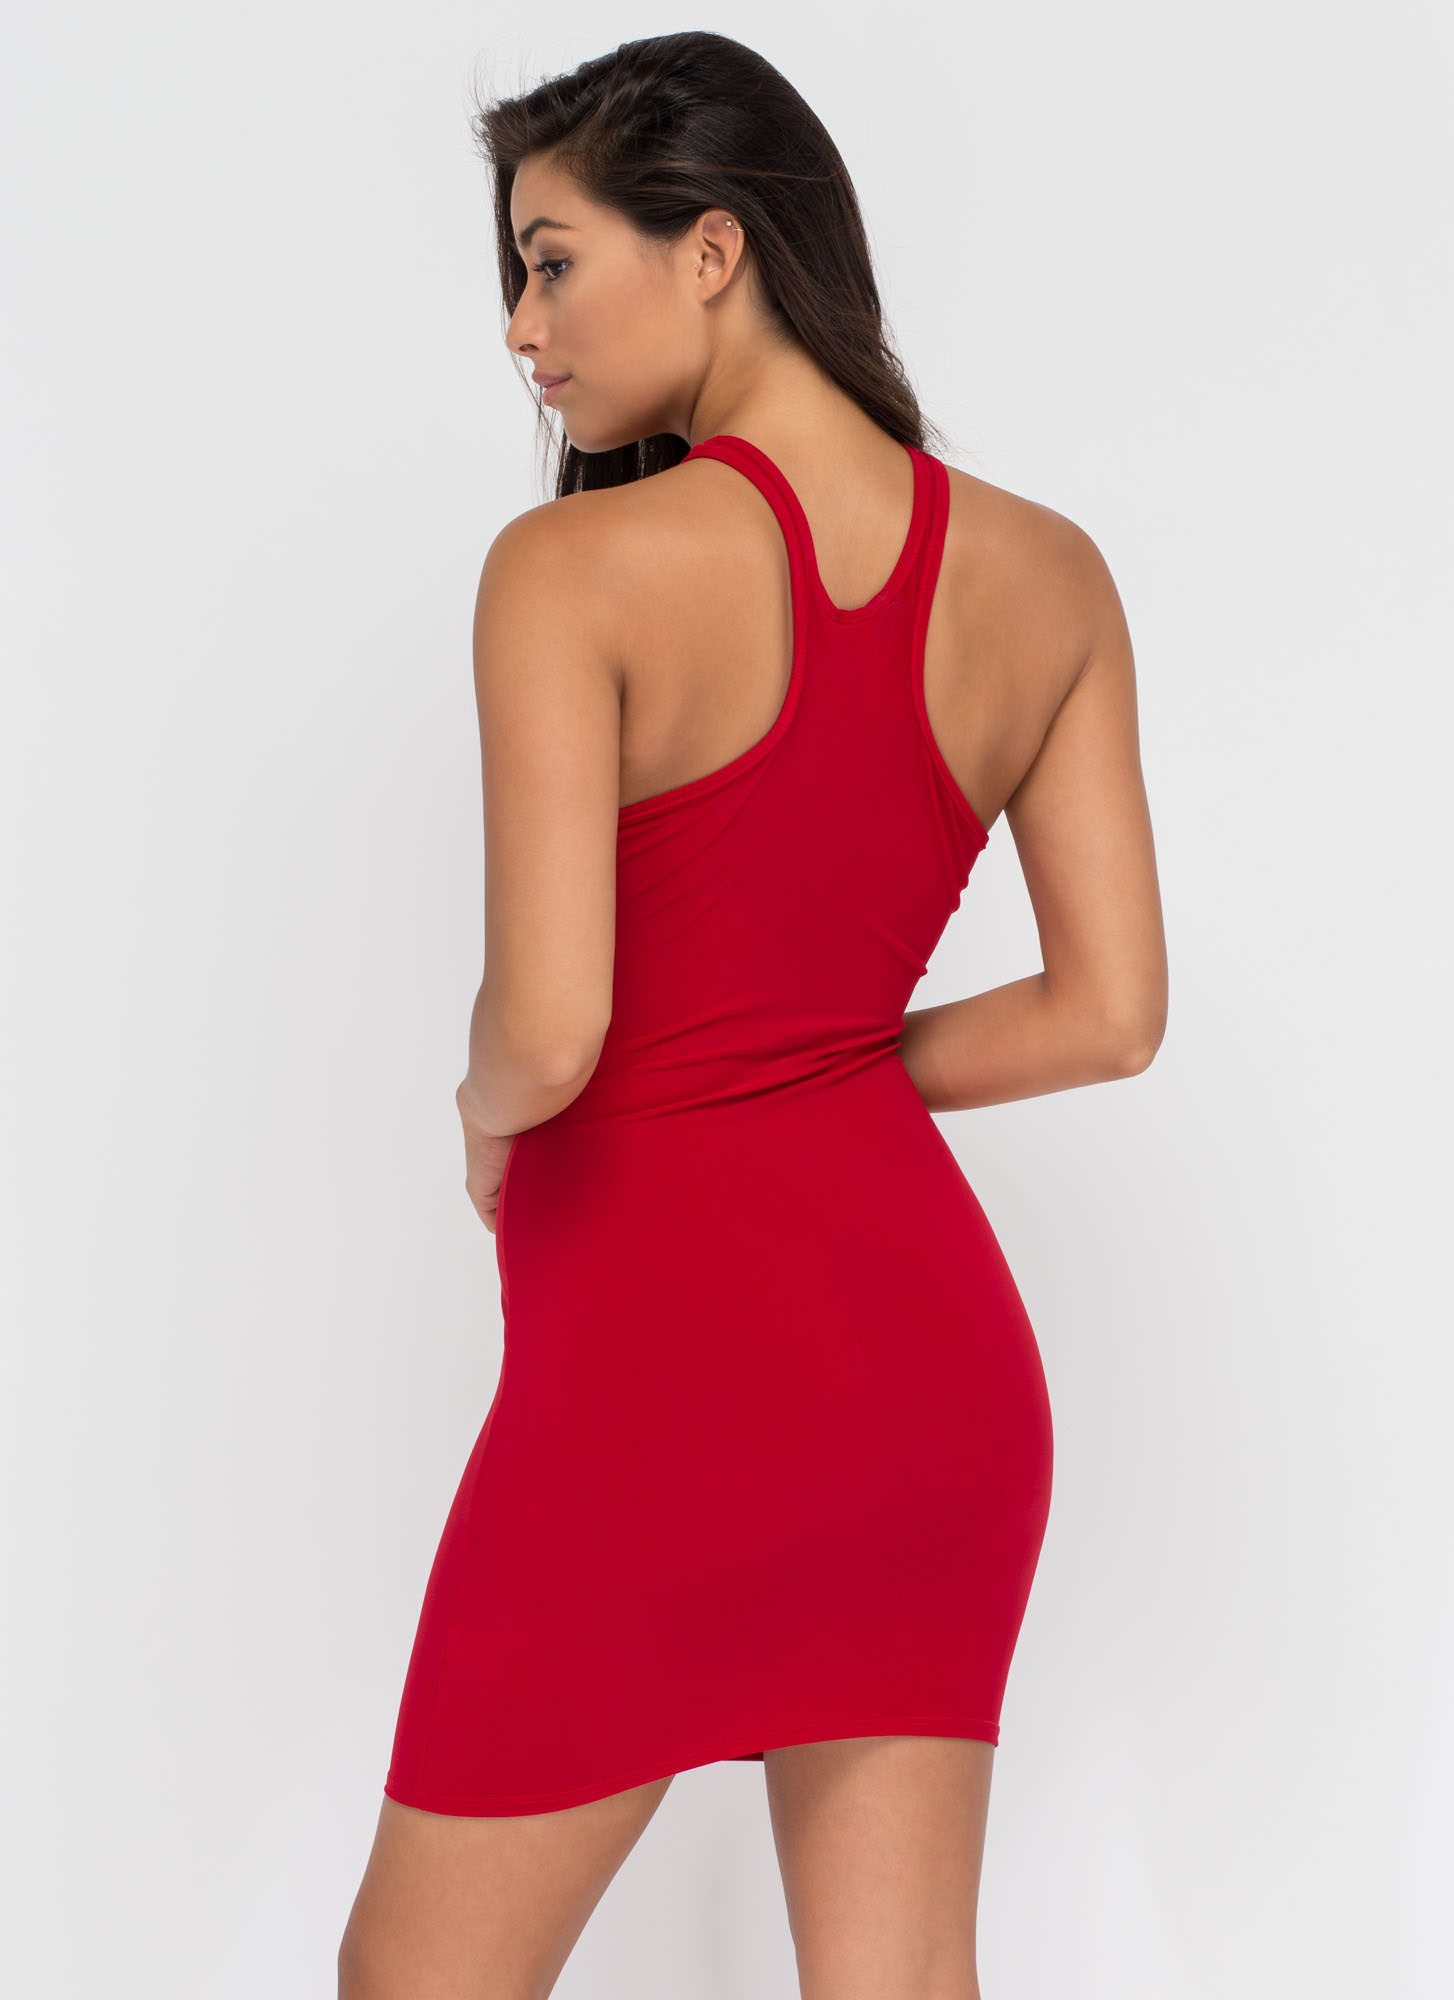 All Oval The Place Cut-Out Racer Dress RED (Final Sale)